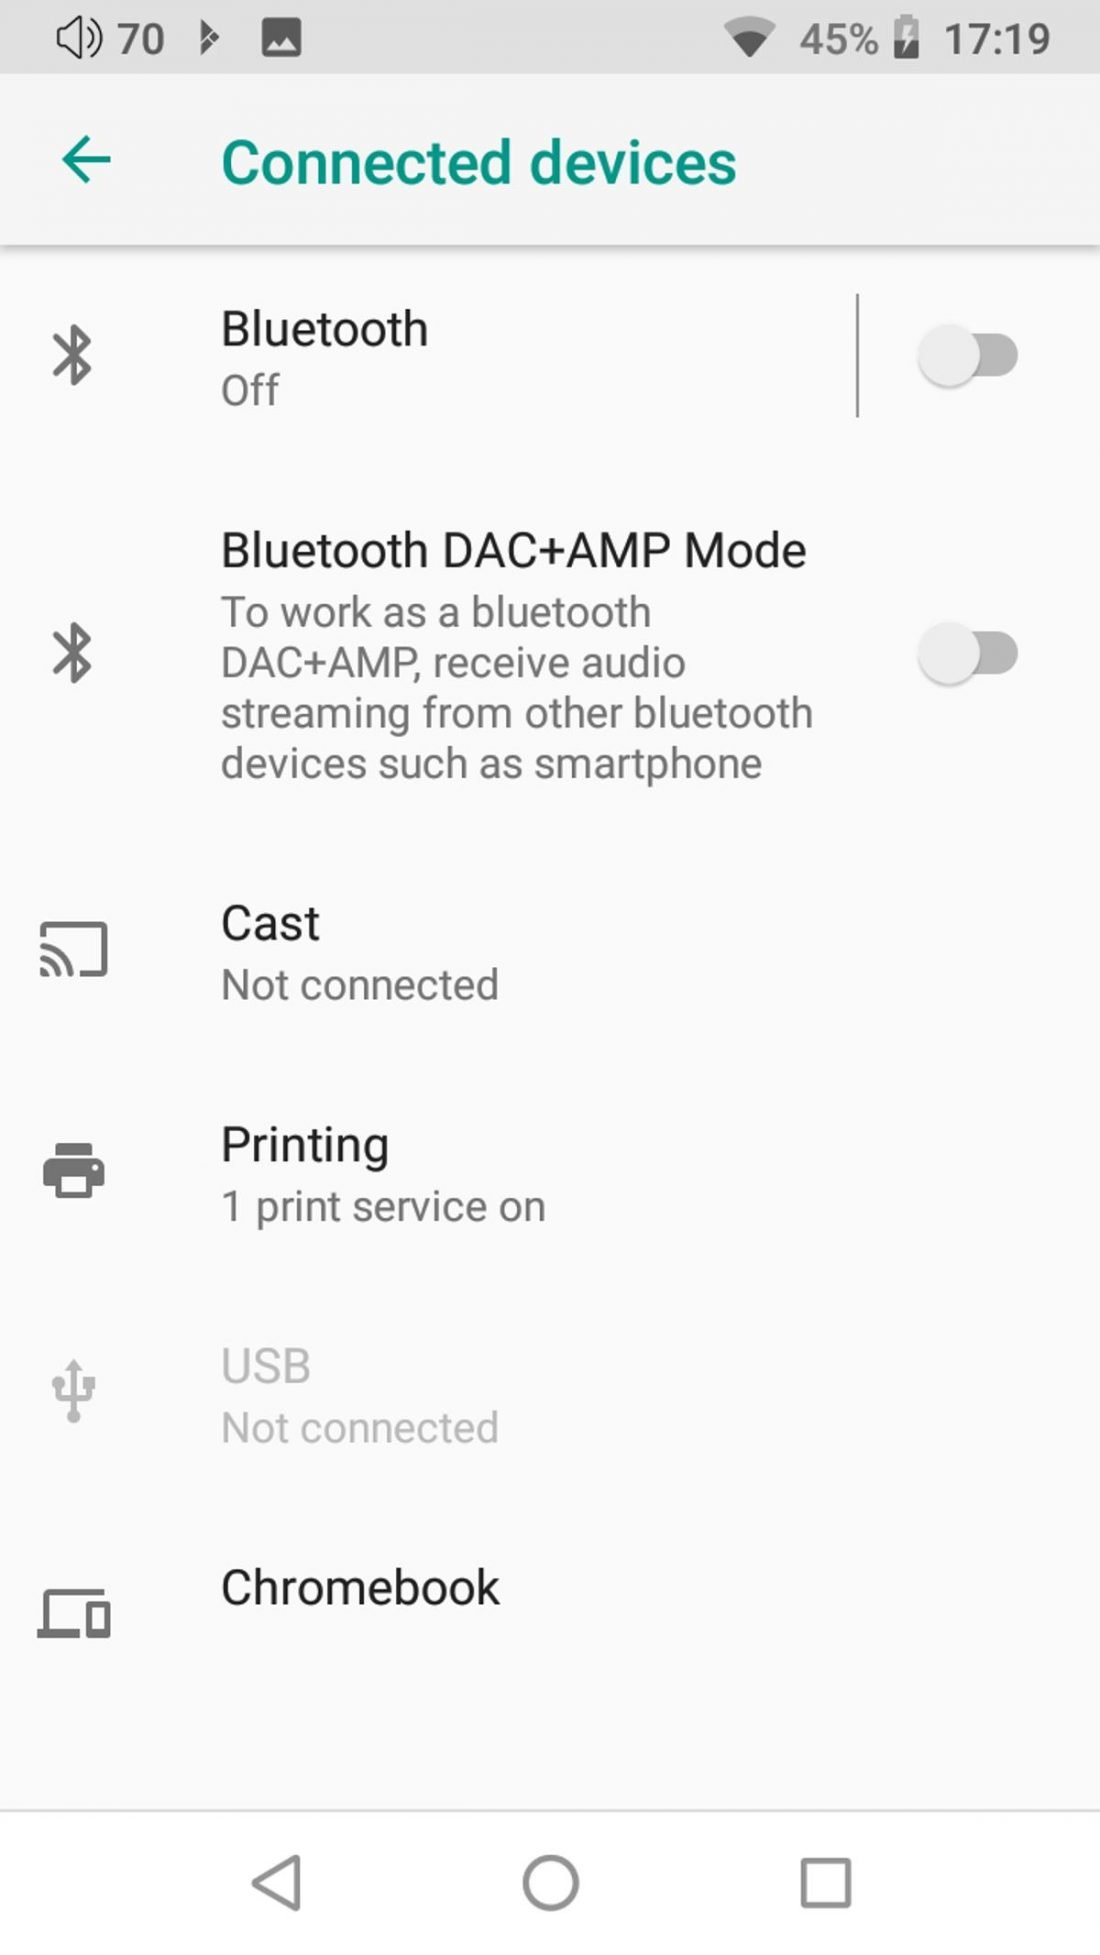 DX220 can work as a Bluetooth DAC + Amp.